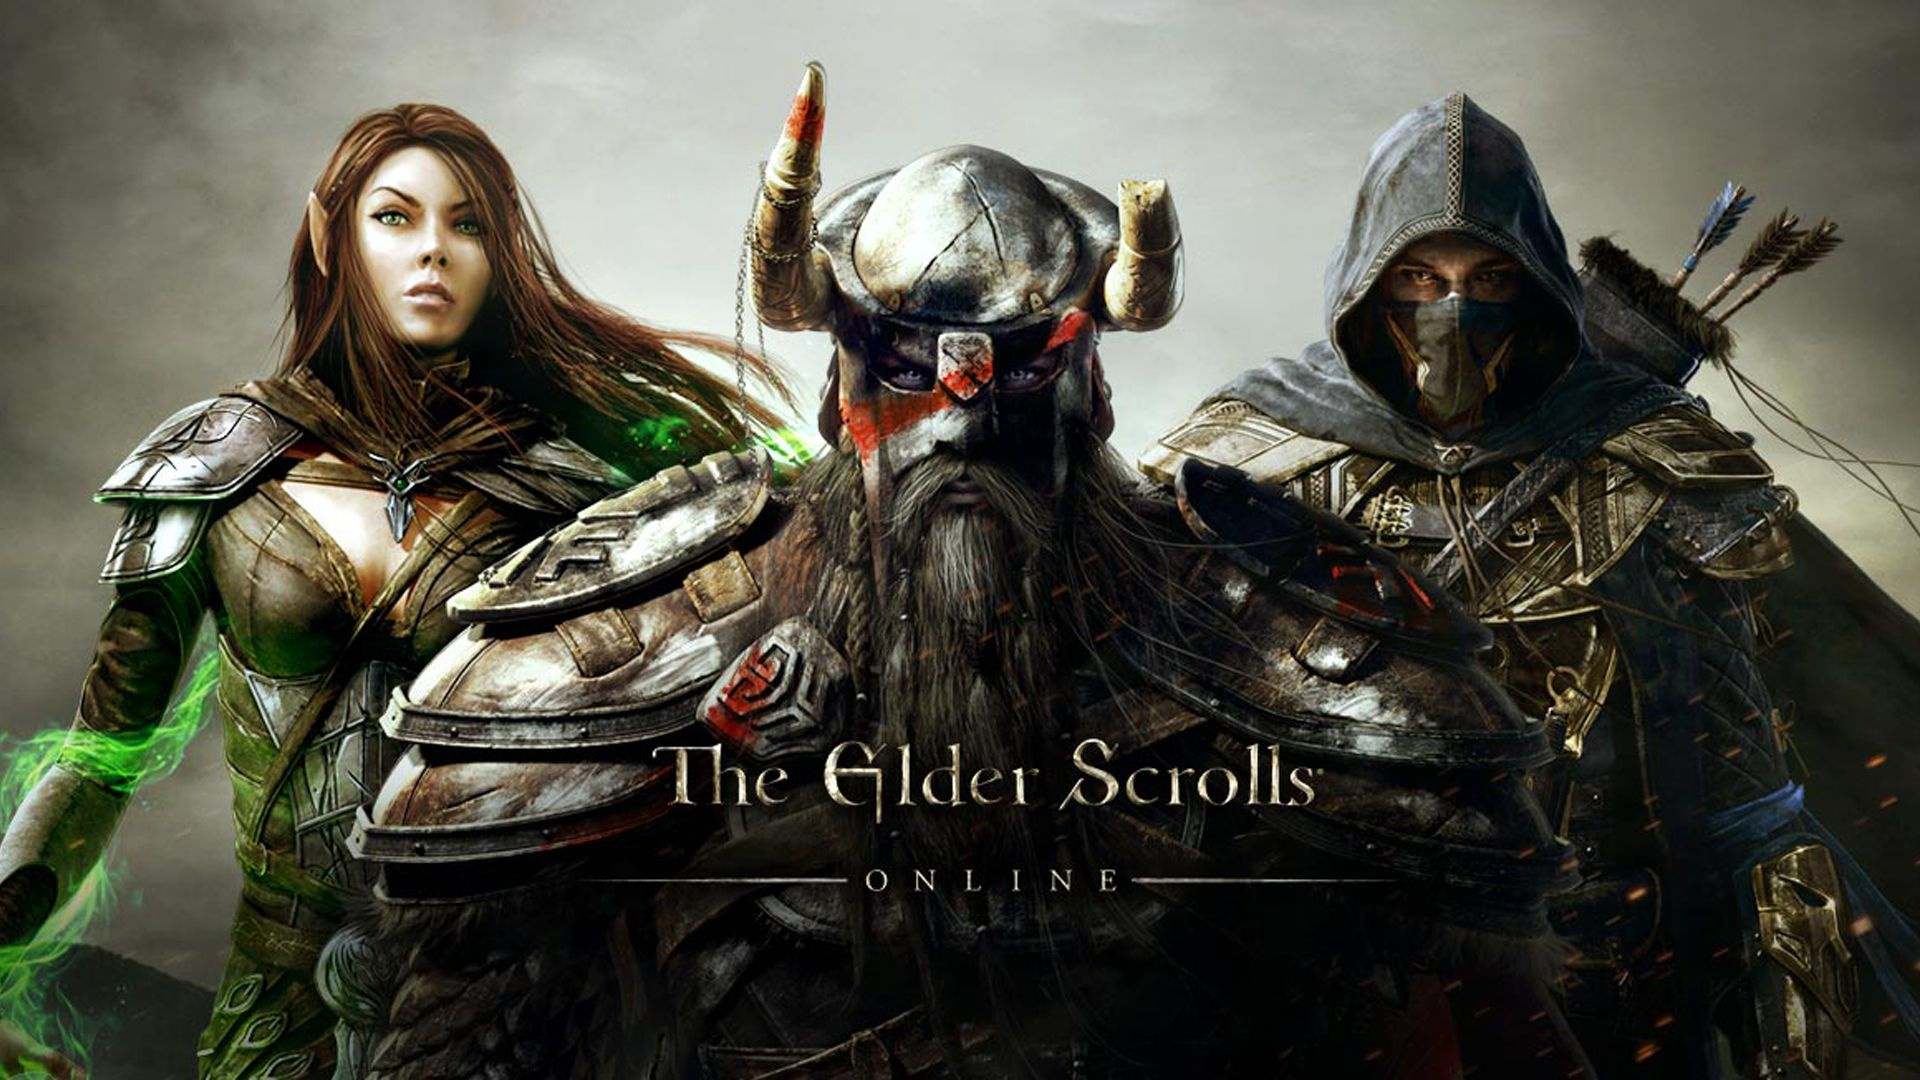 http://images.pushsquare.com/news/2013/12/the_elder_scrolls_online_will_consume_your_ps4_in_june/attachment/0/original.jpg